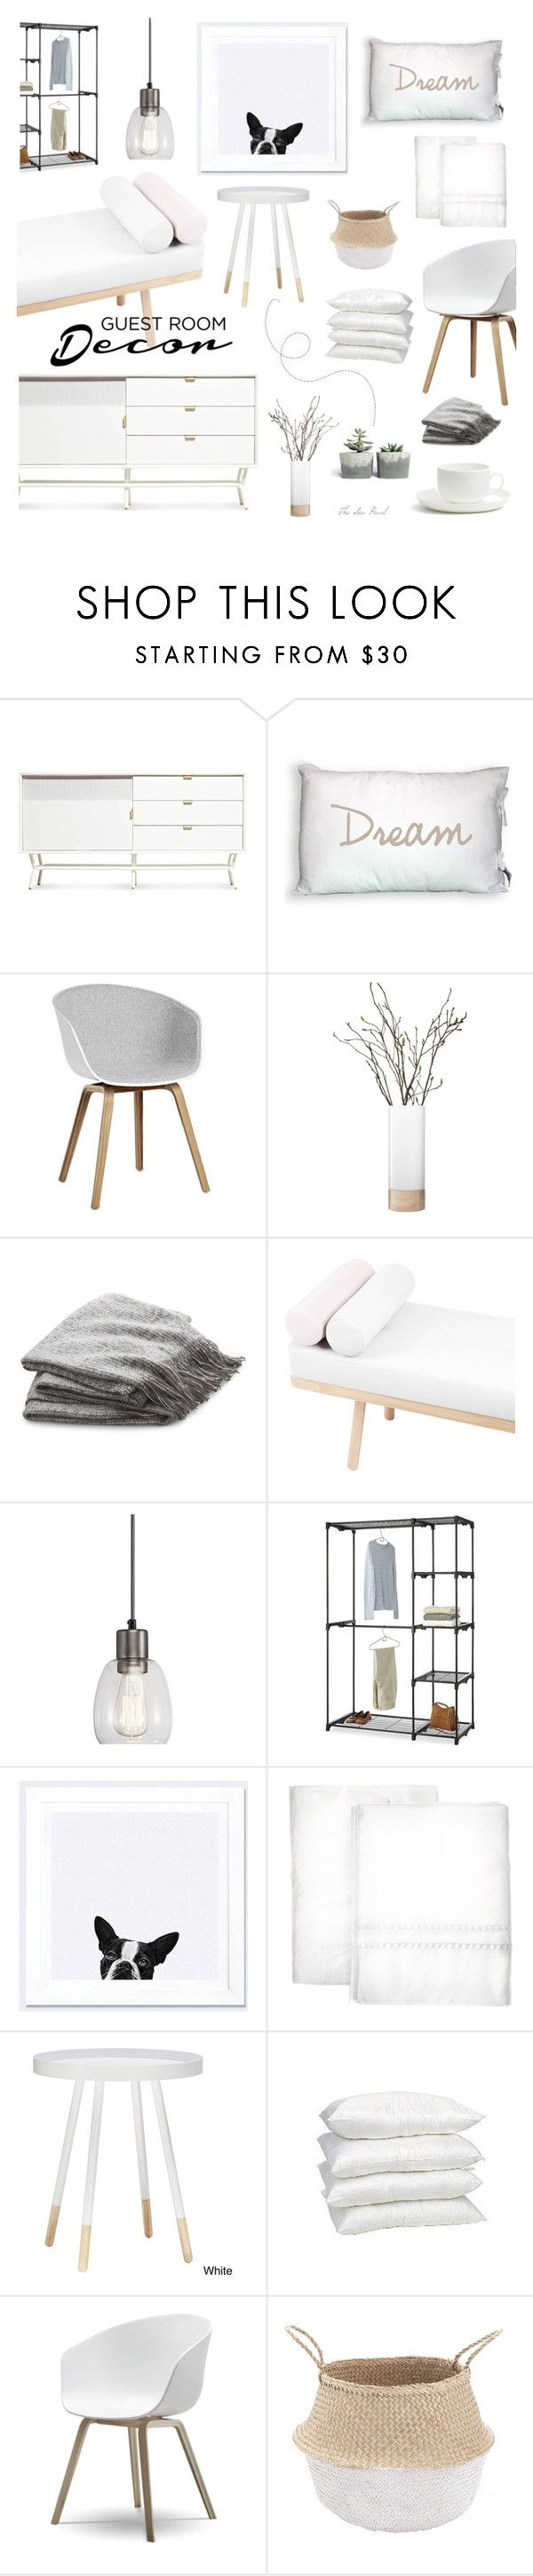 """""""Guest Room Decor"""" by theseapearl on Polyvore featuring interior, interiors, interior design, home, home decor, interior decorating, Blu Dot, HAY, LSA International and Crate and Barrel"""